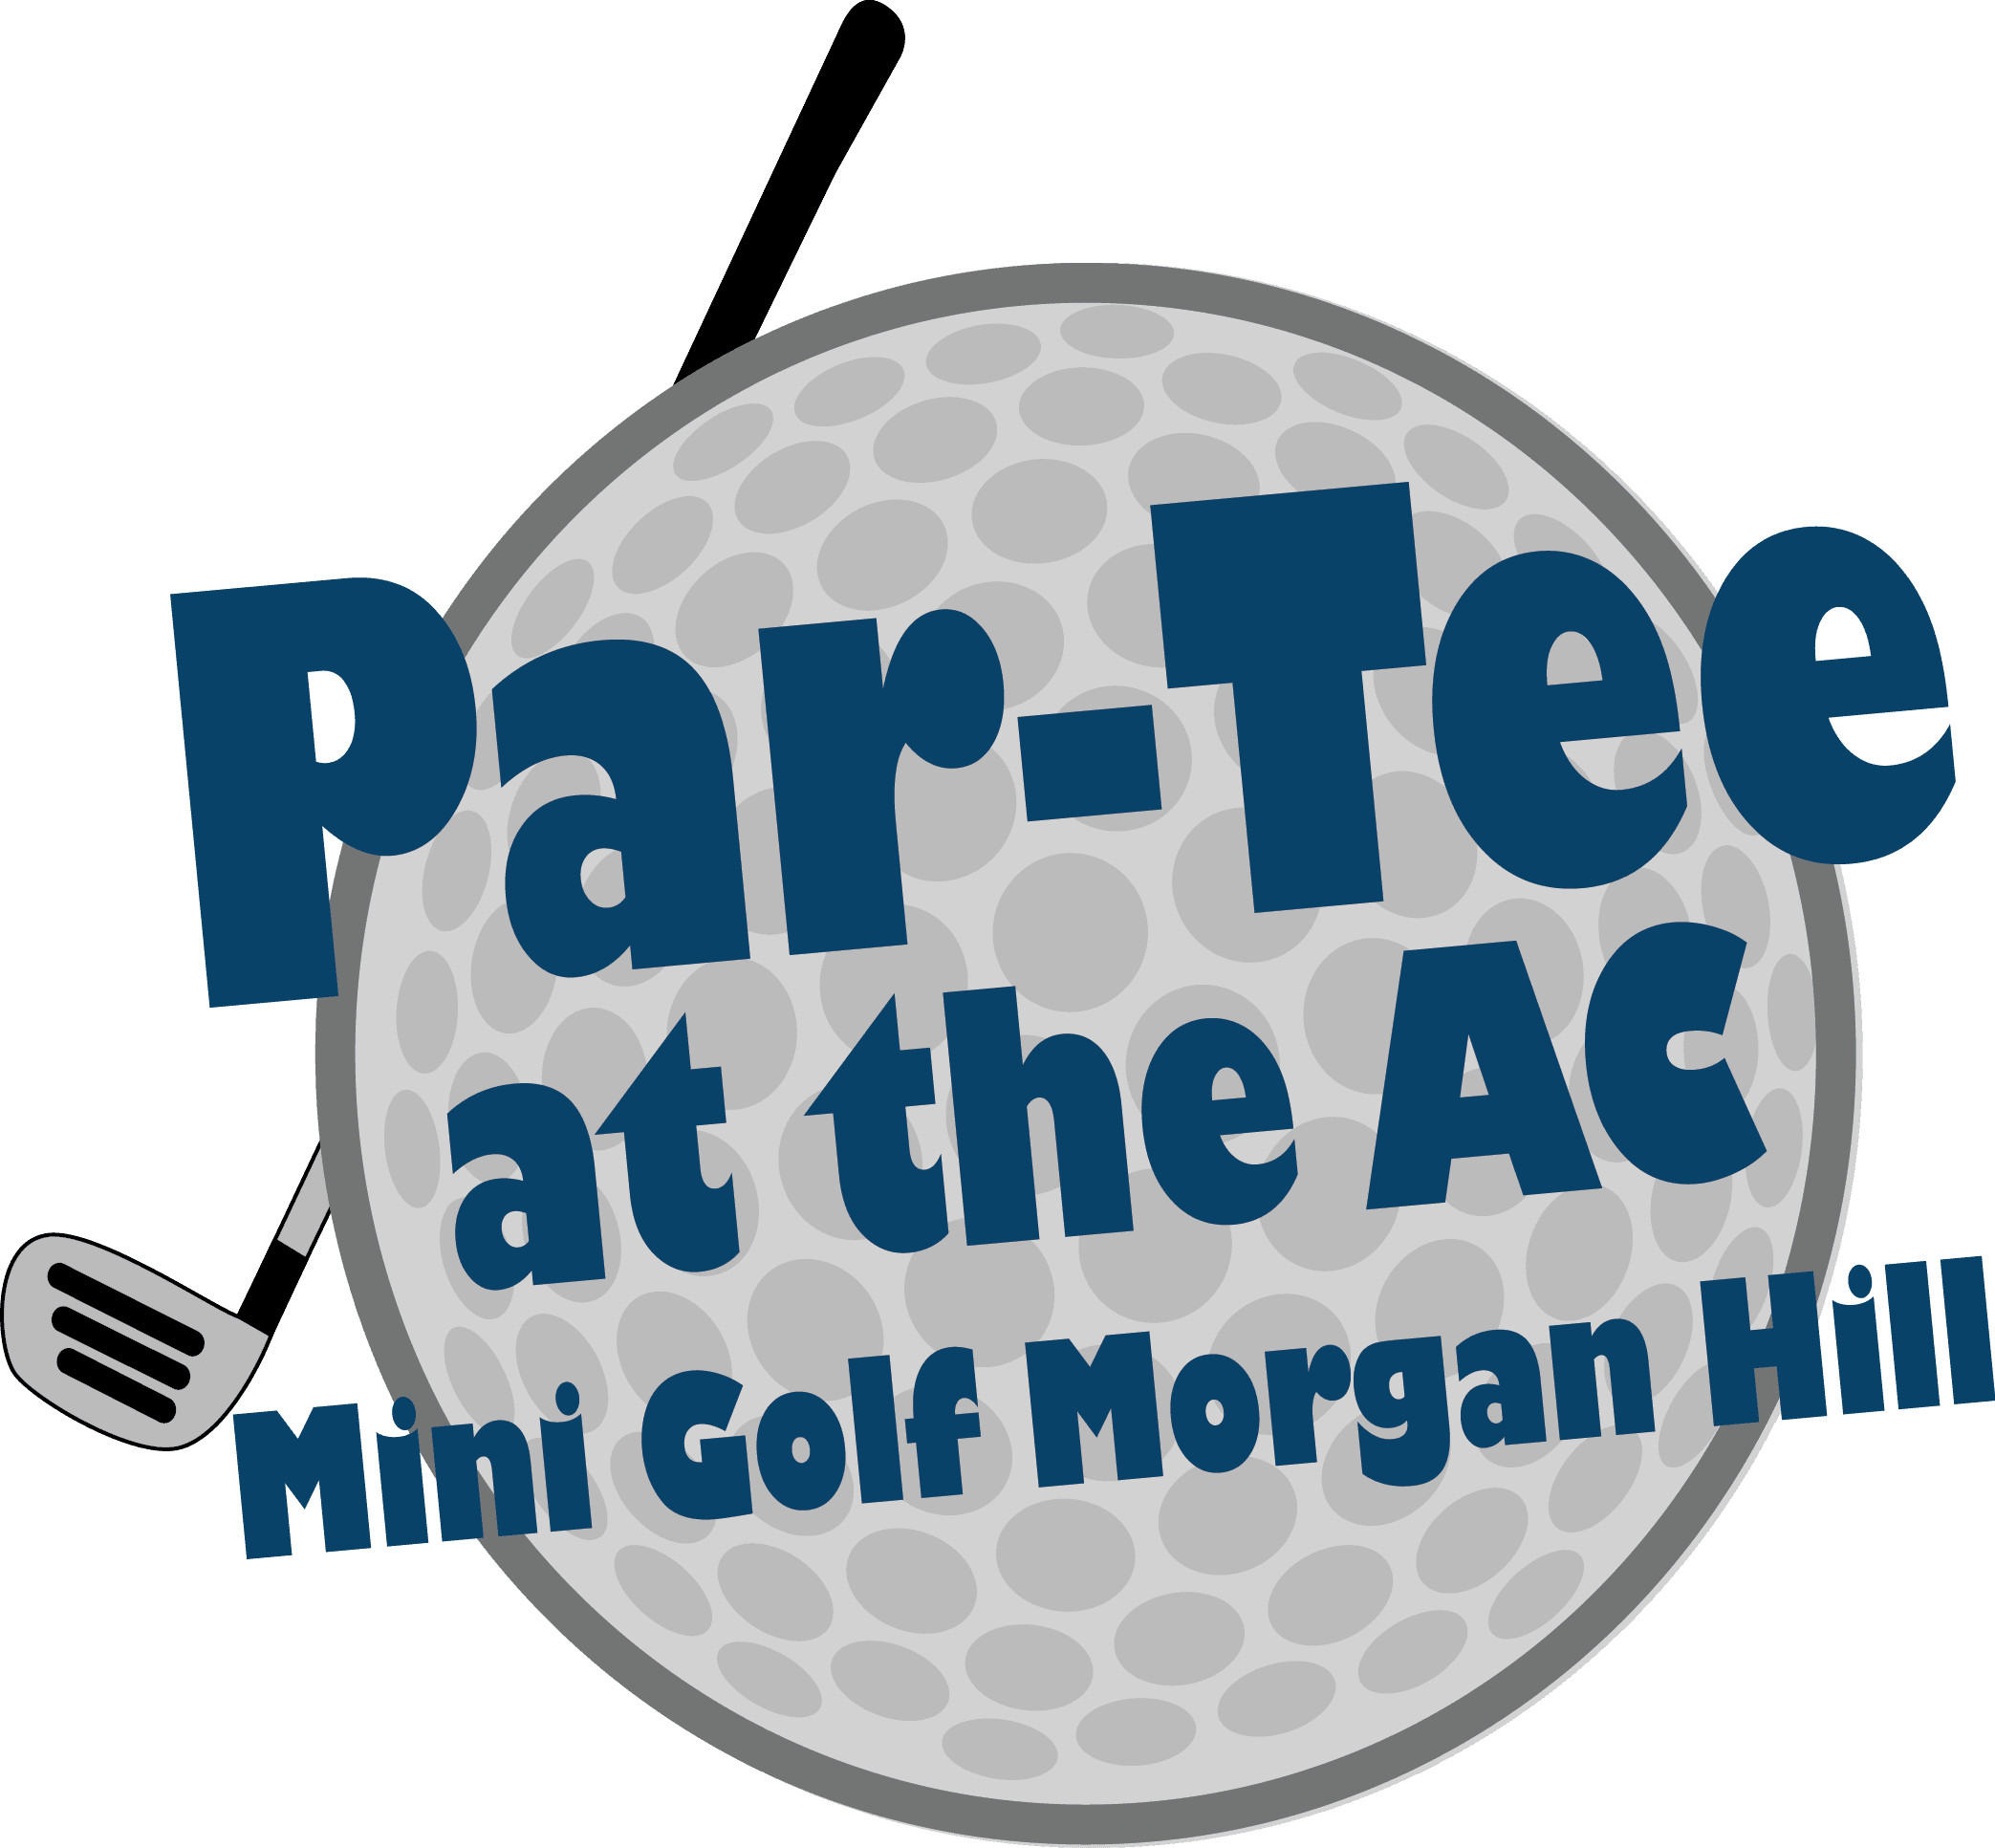 Logo with golf ball and putter for mini golf